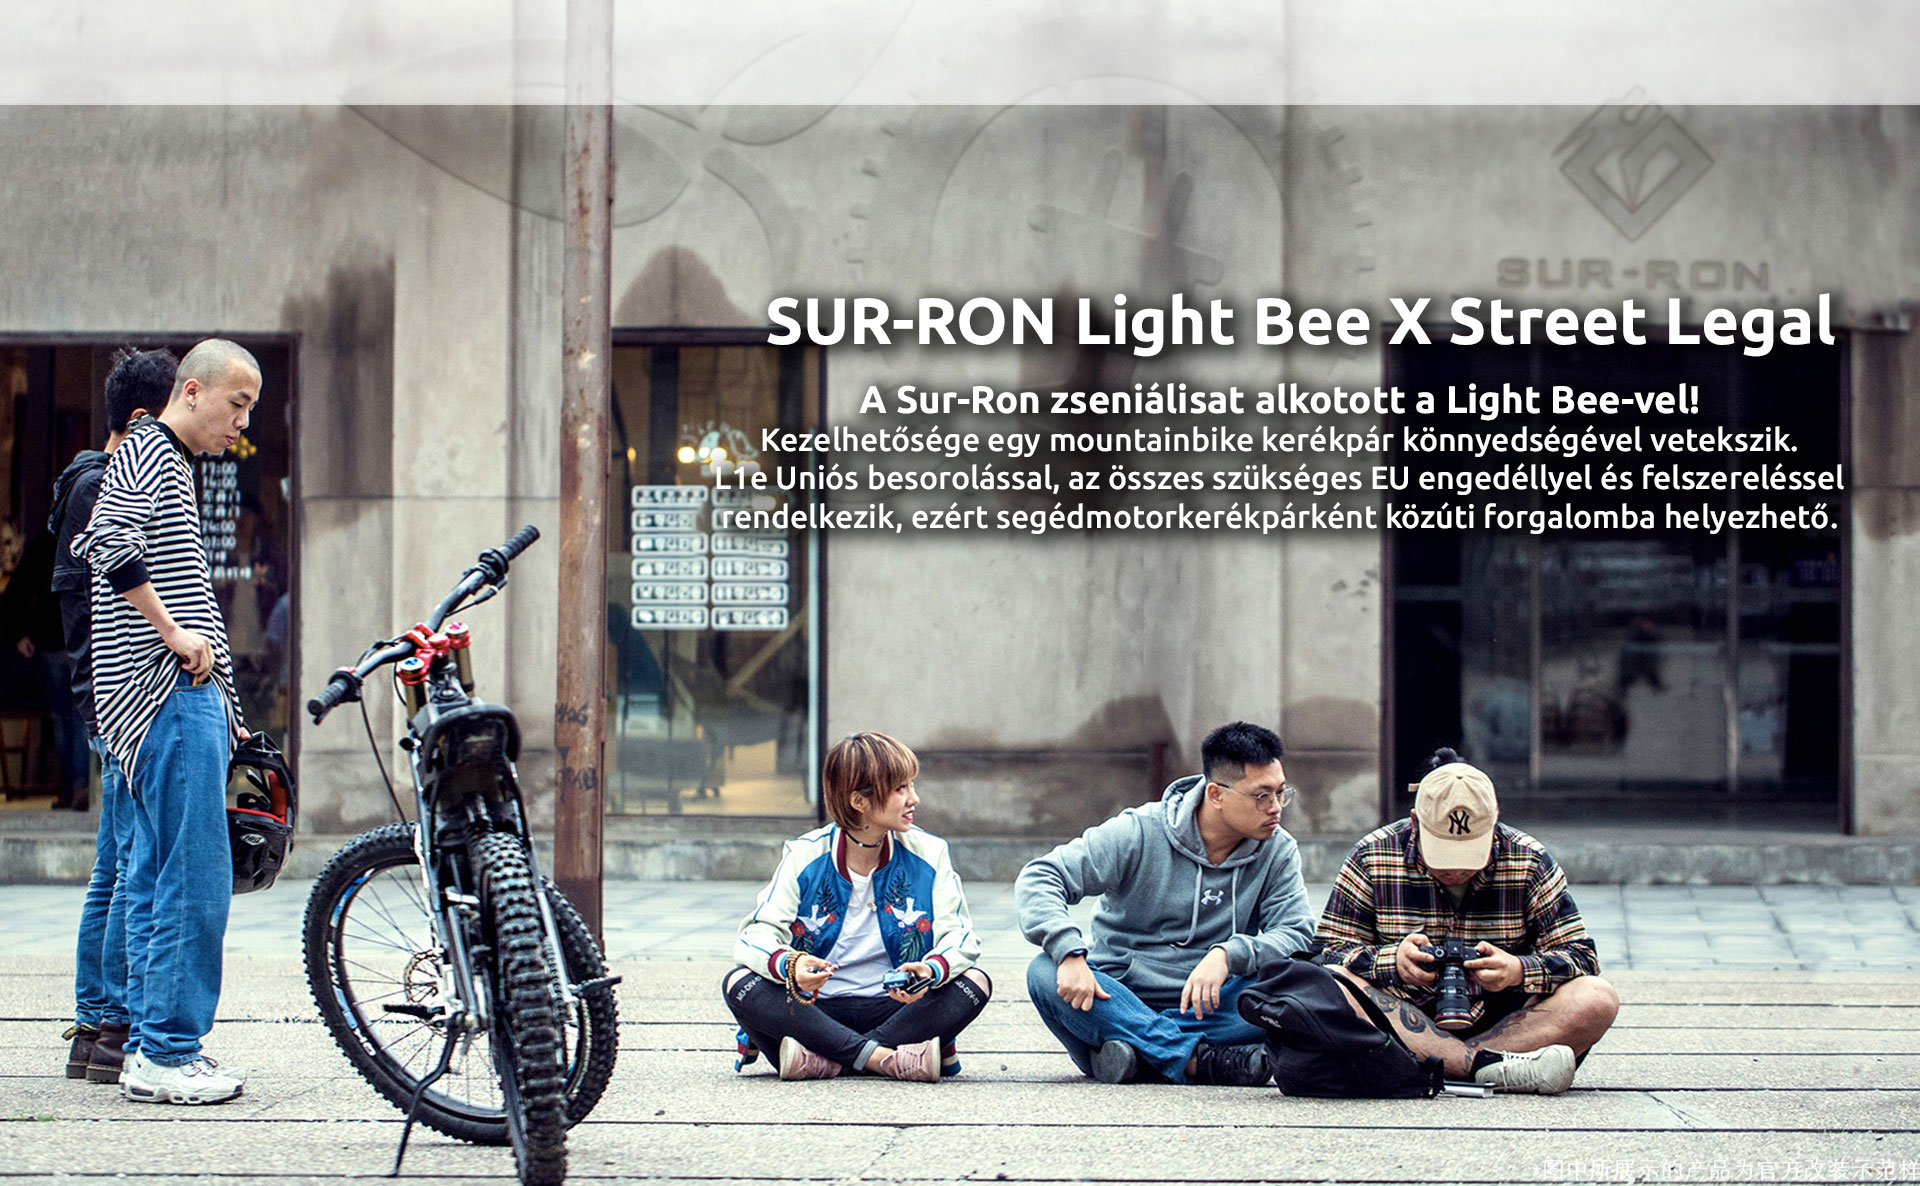 Sur-Ron Light Bee X street legal